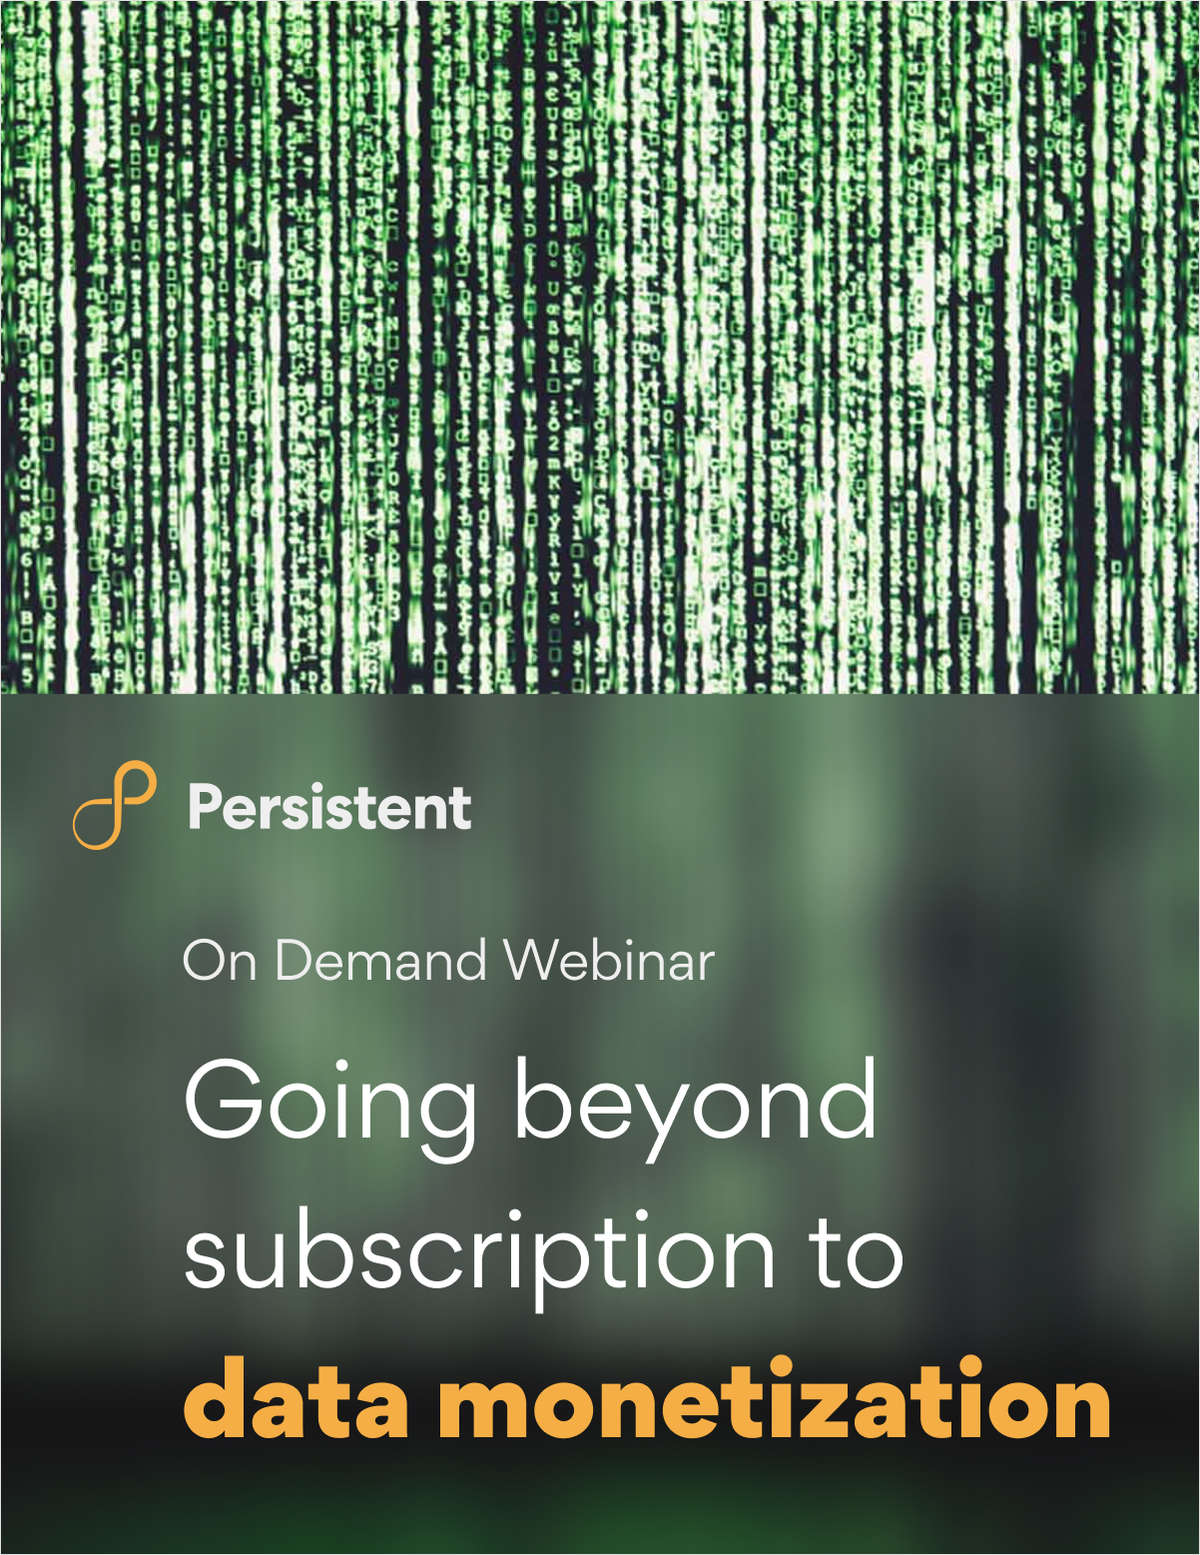 Going beyond subscription to data monetization